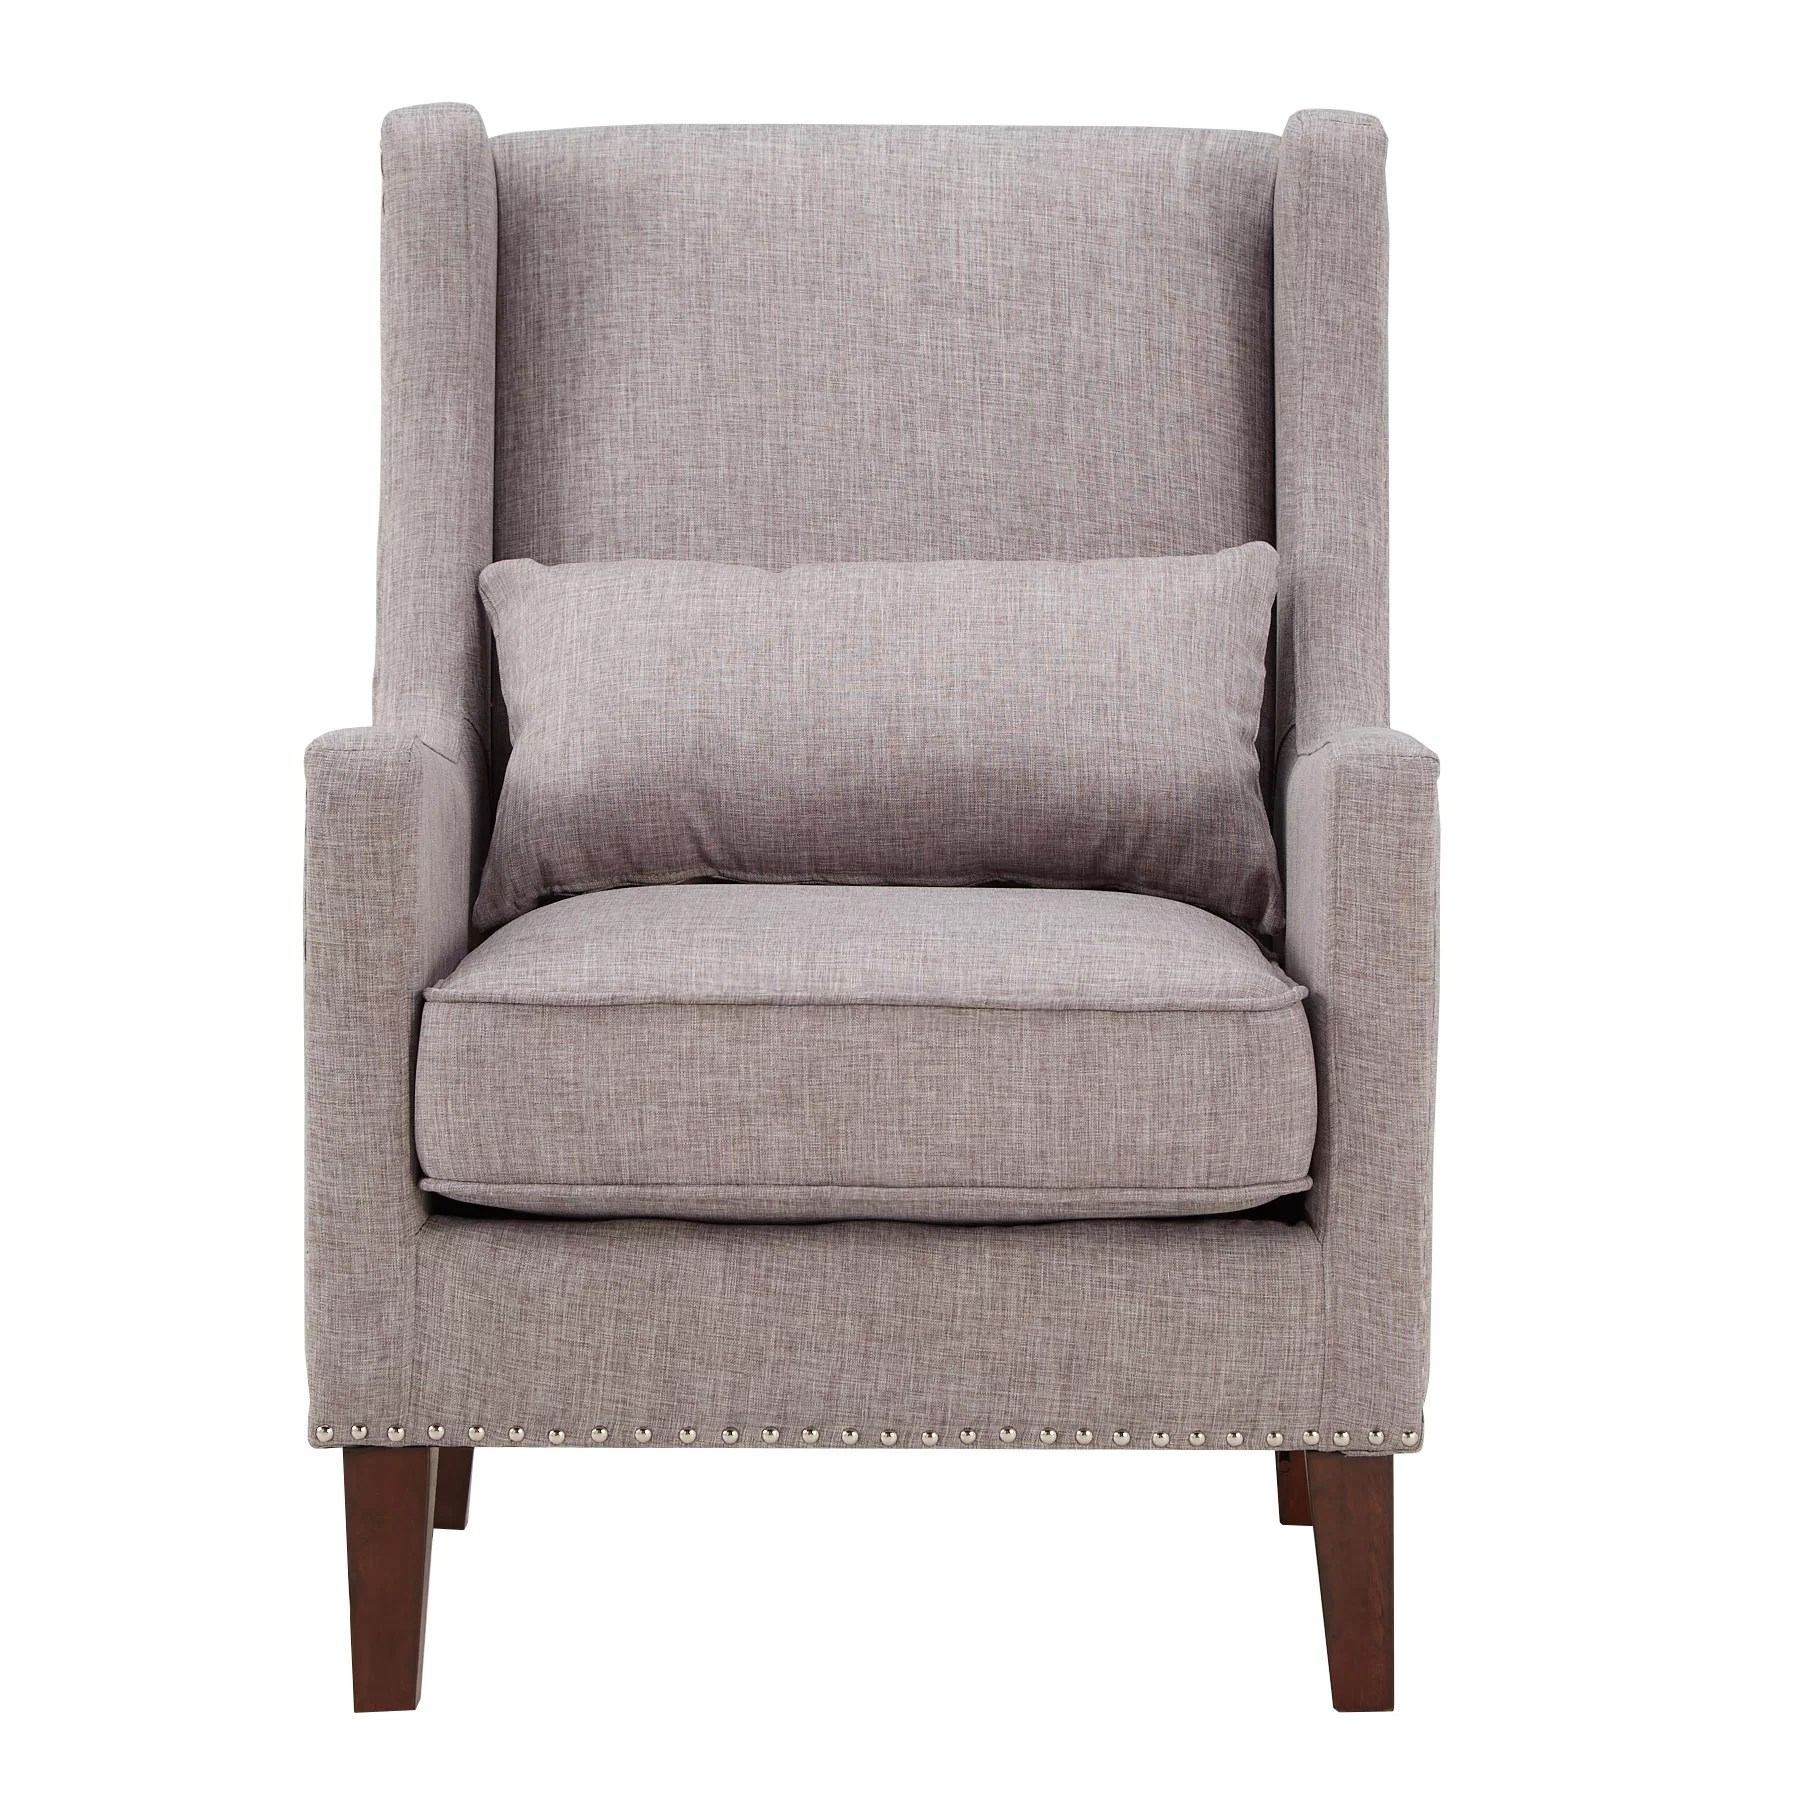 Wingback Recliner Chair Oneill Wingback Chair